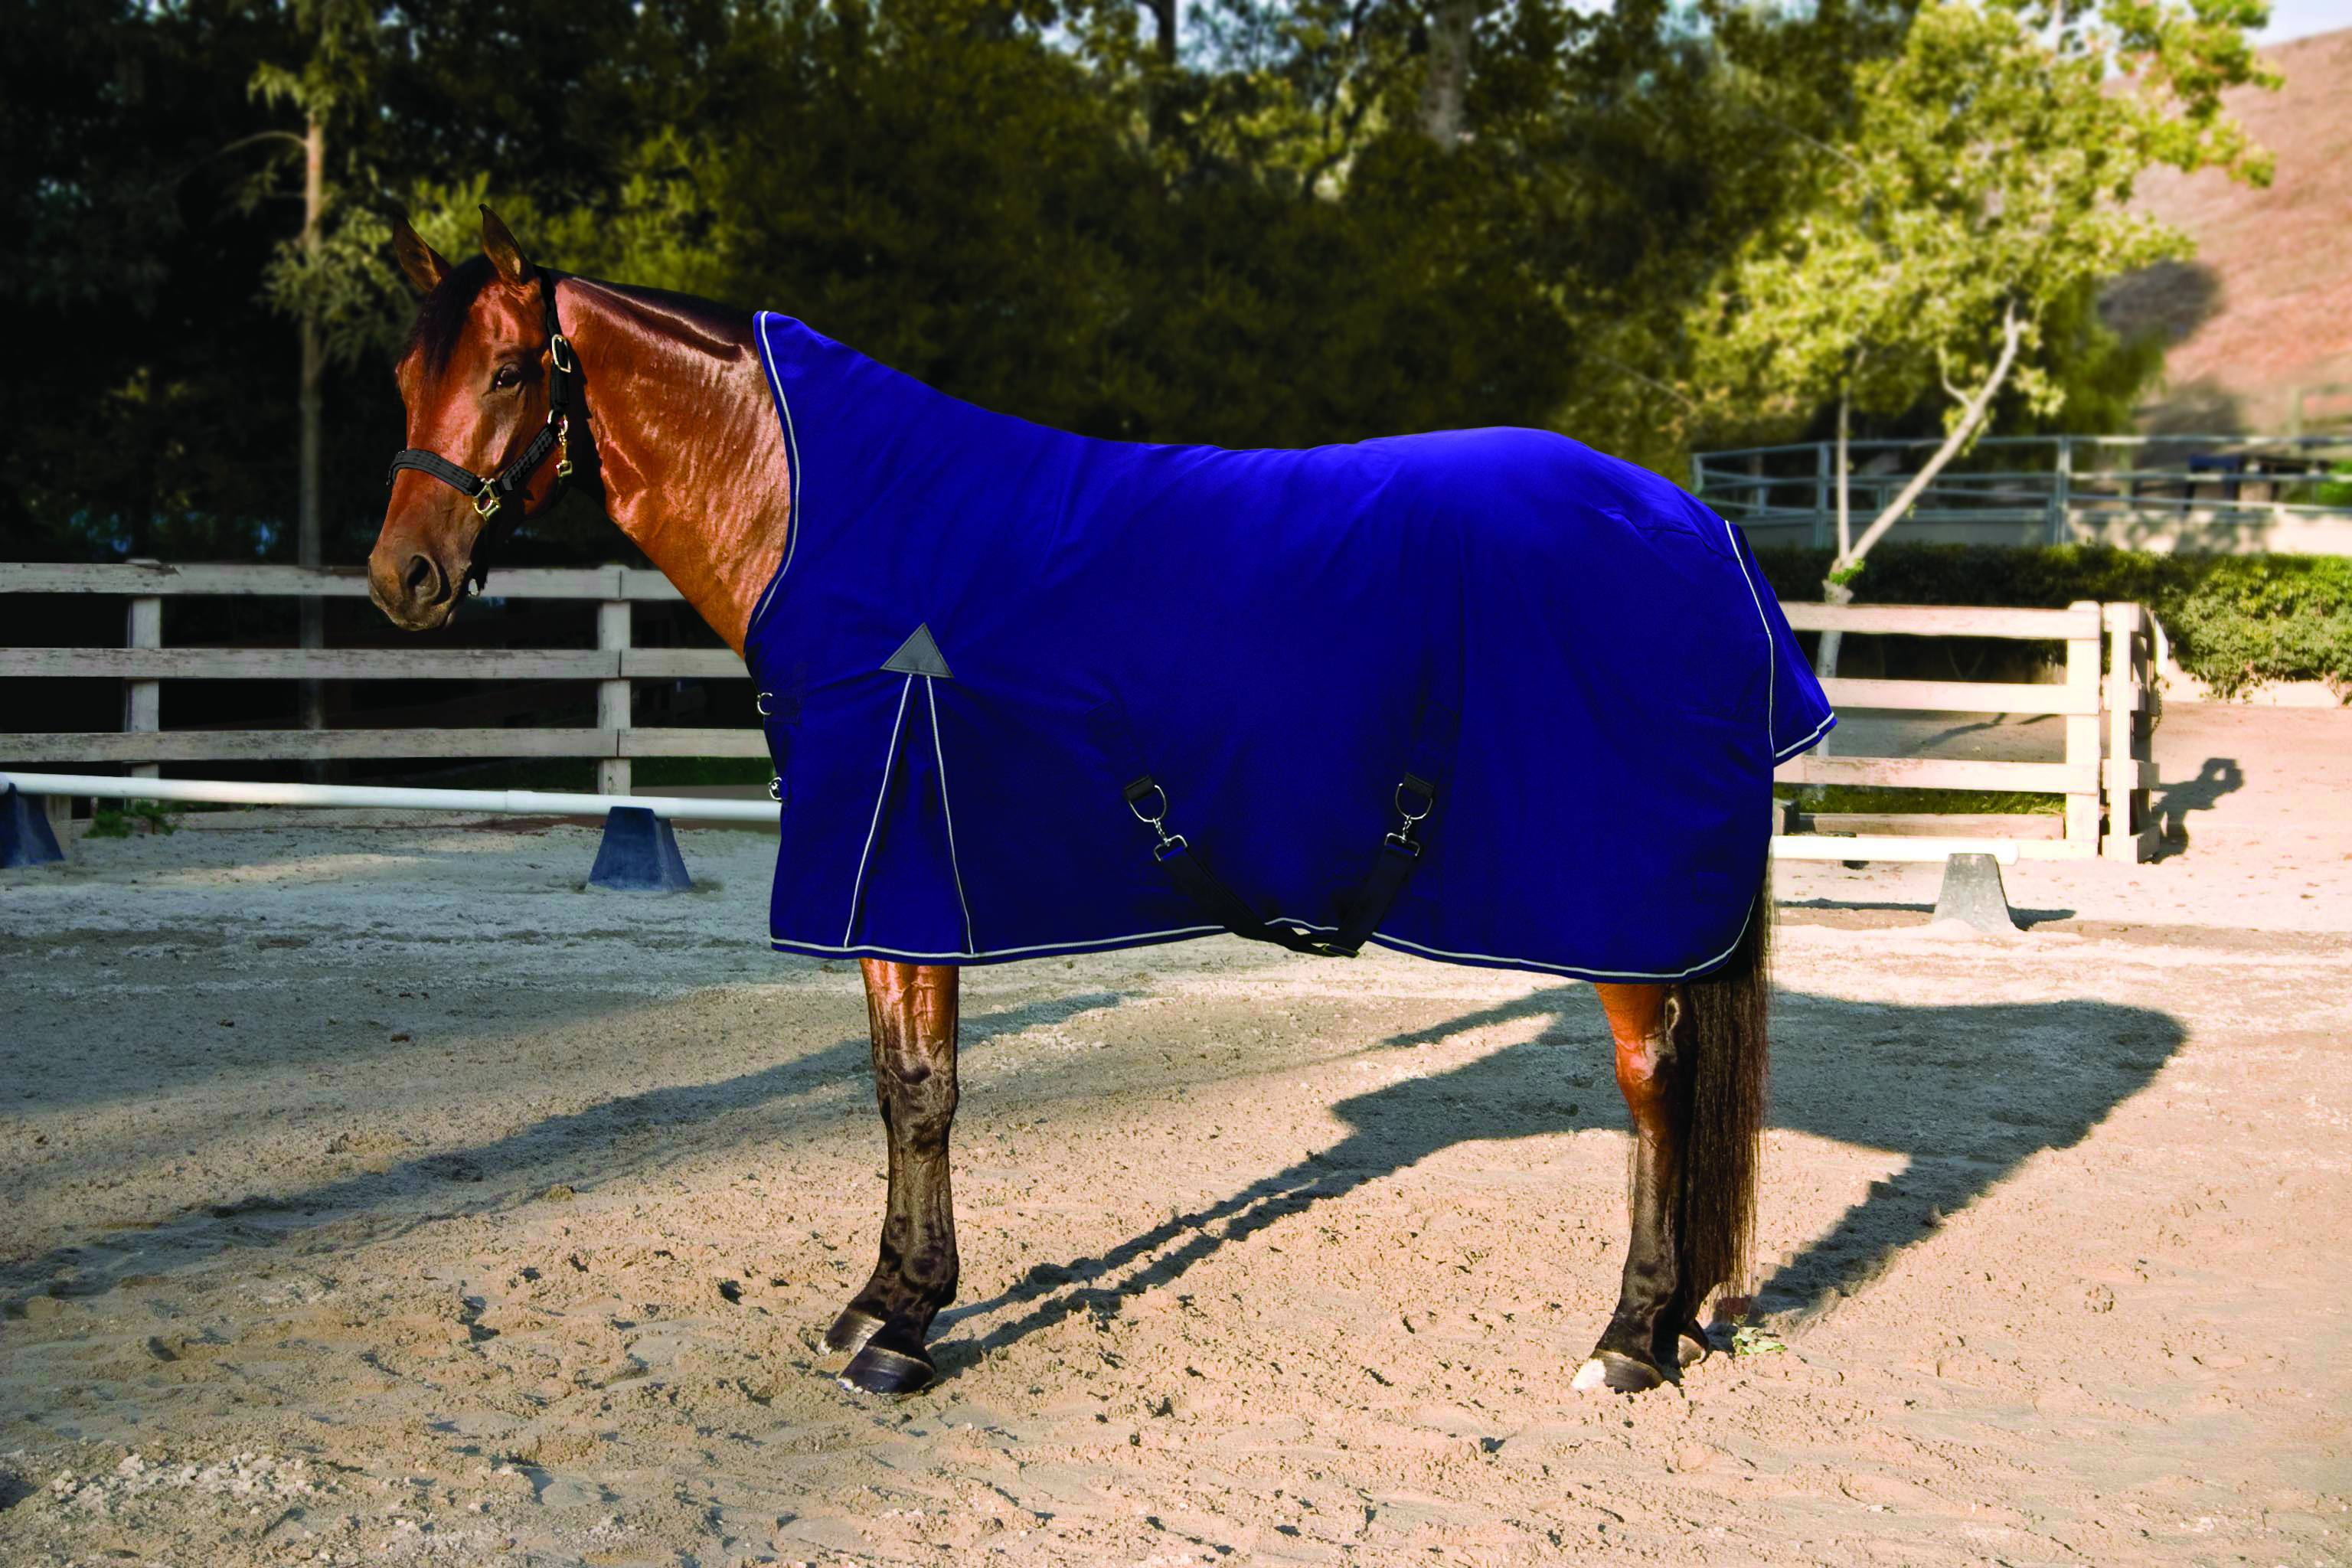 Outlet - Kensington Platinum Mid Neck Turnout Sheet - Lightweight (no fill), 69, Blue Violet/Blue Violet/Silver